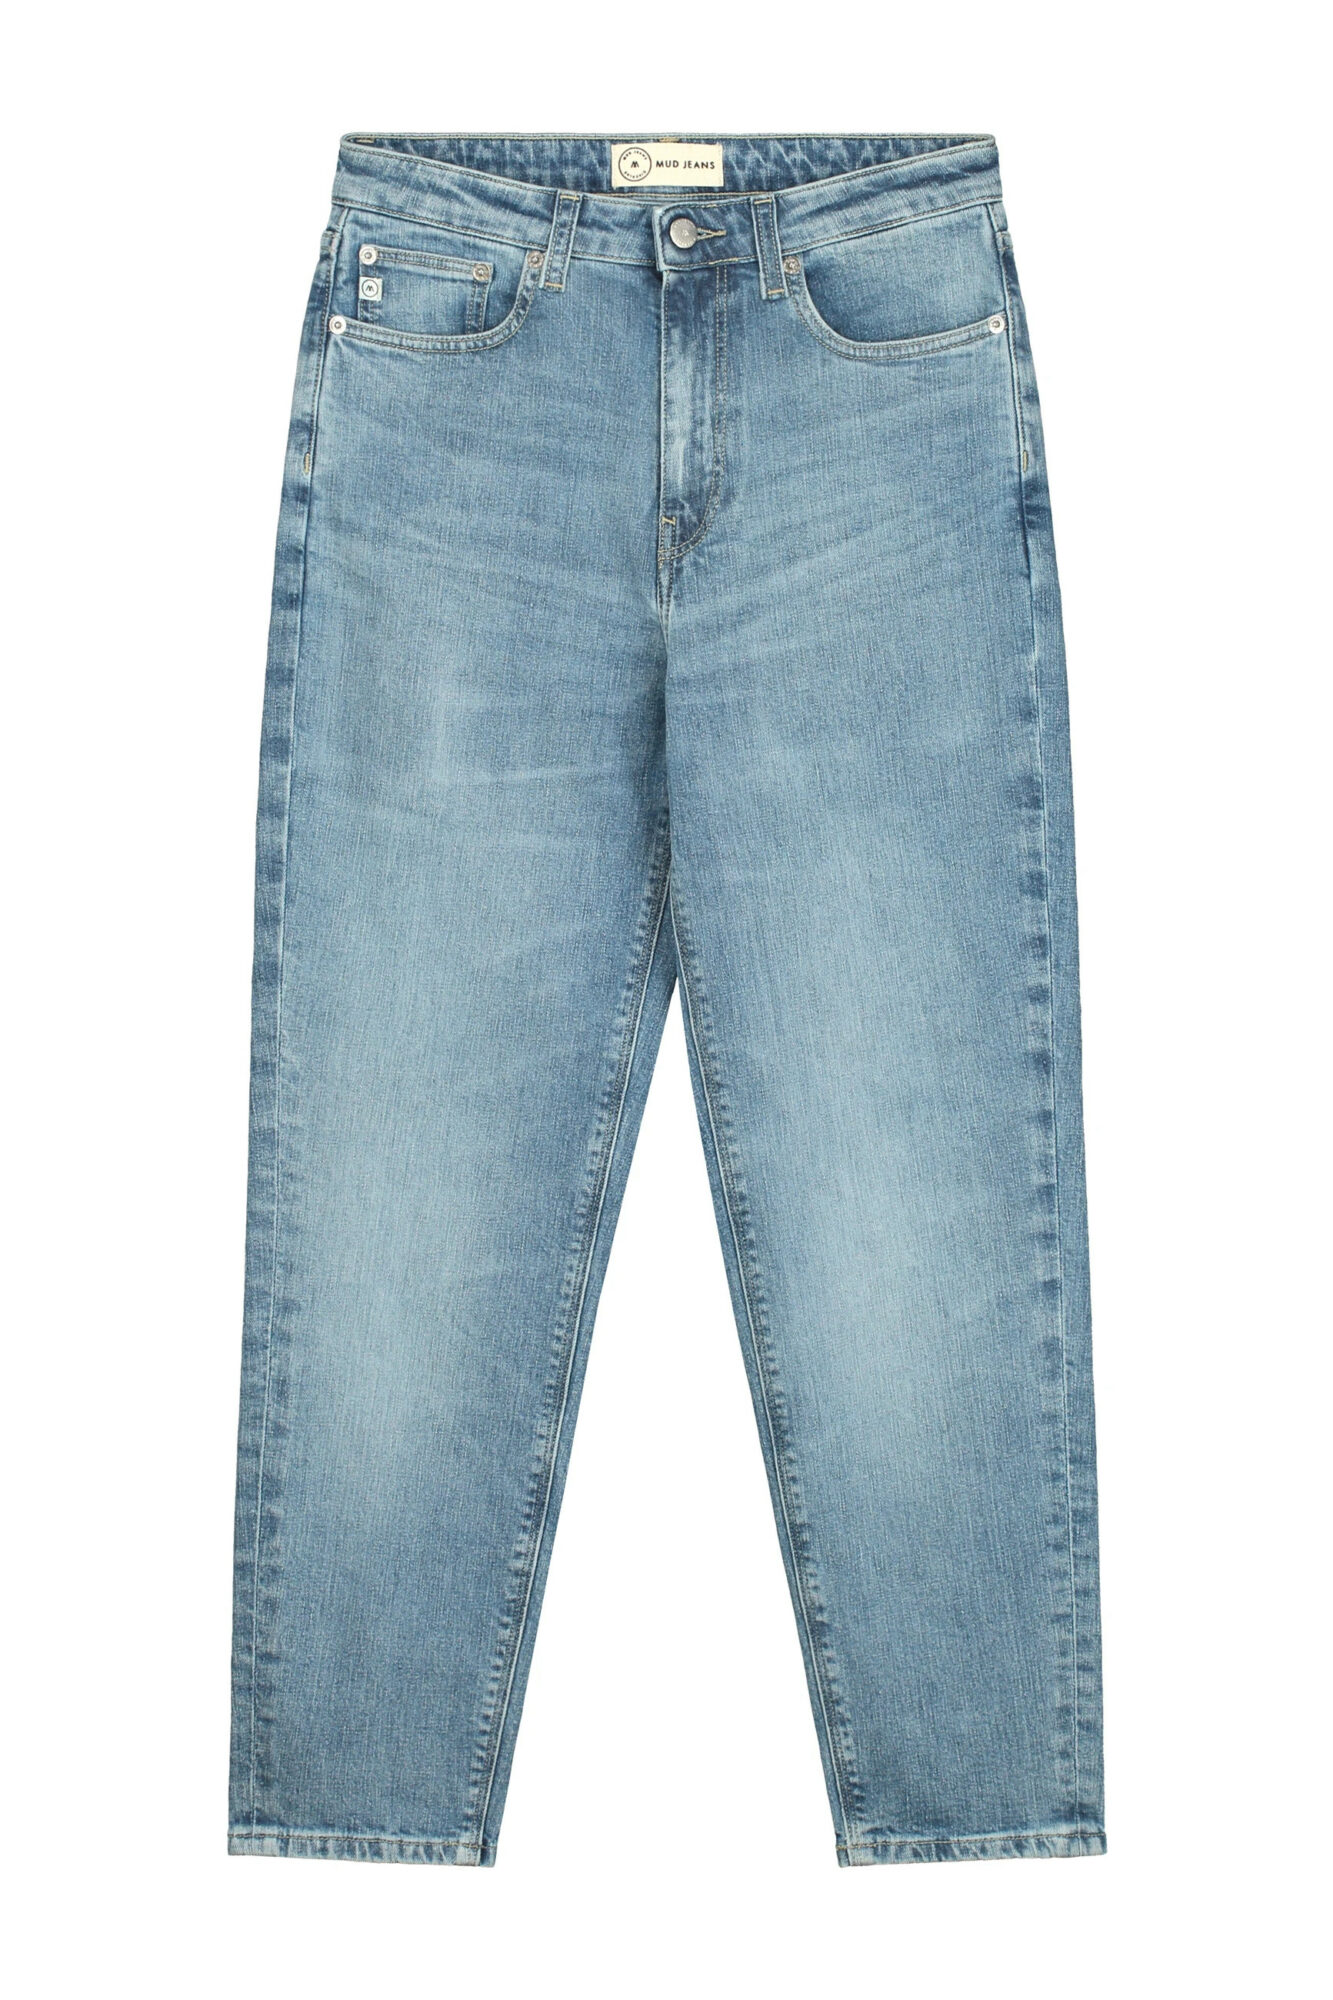 Mud Jeans Mams Stretch Old Stone